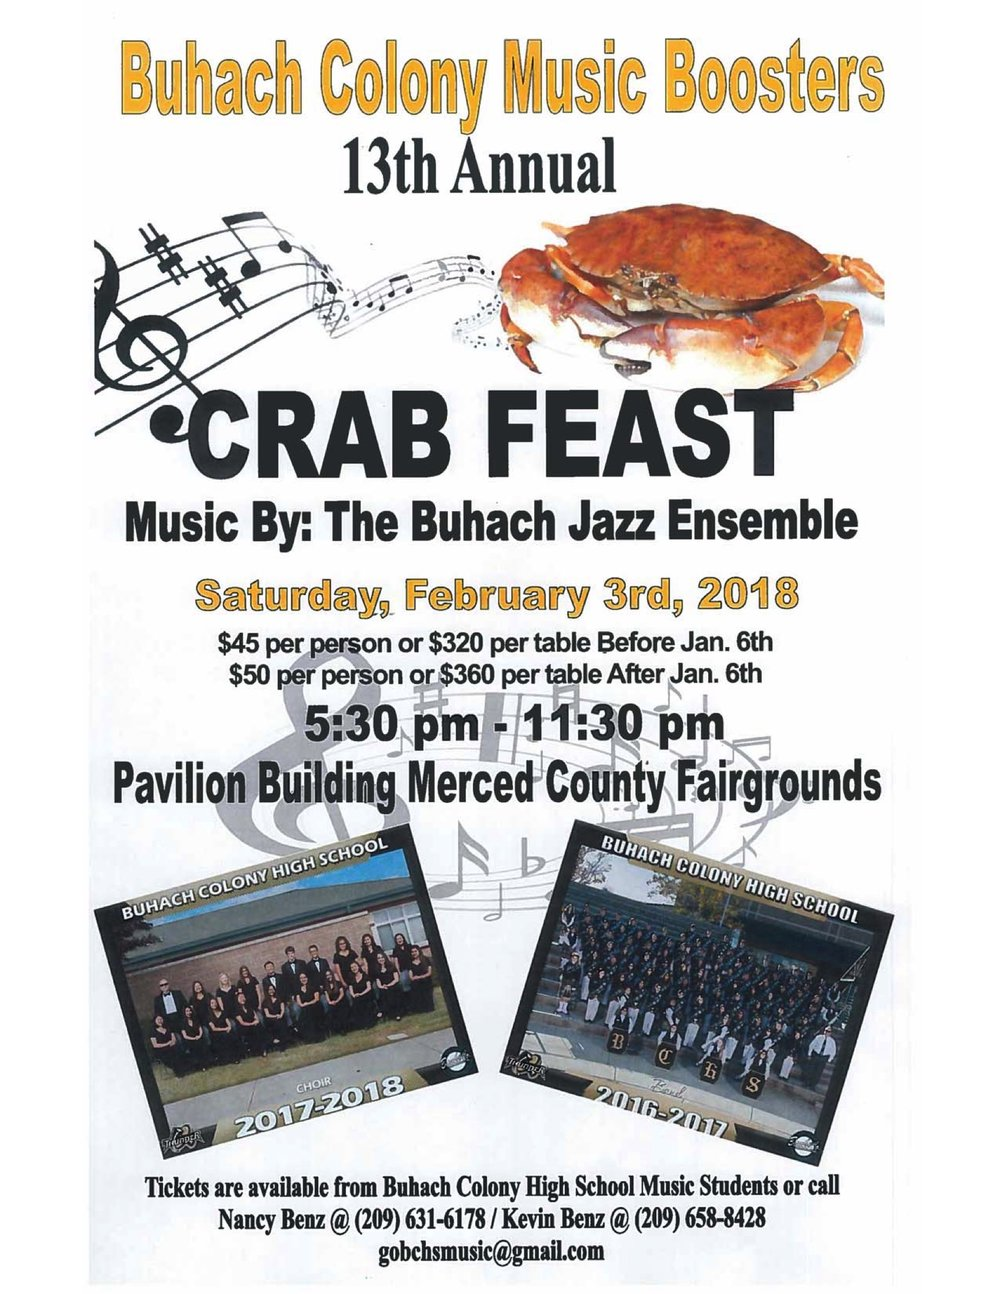 BCHS 2018 Crab Feast Flyer.jpg